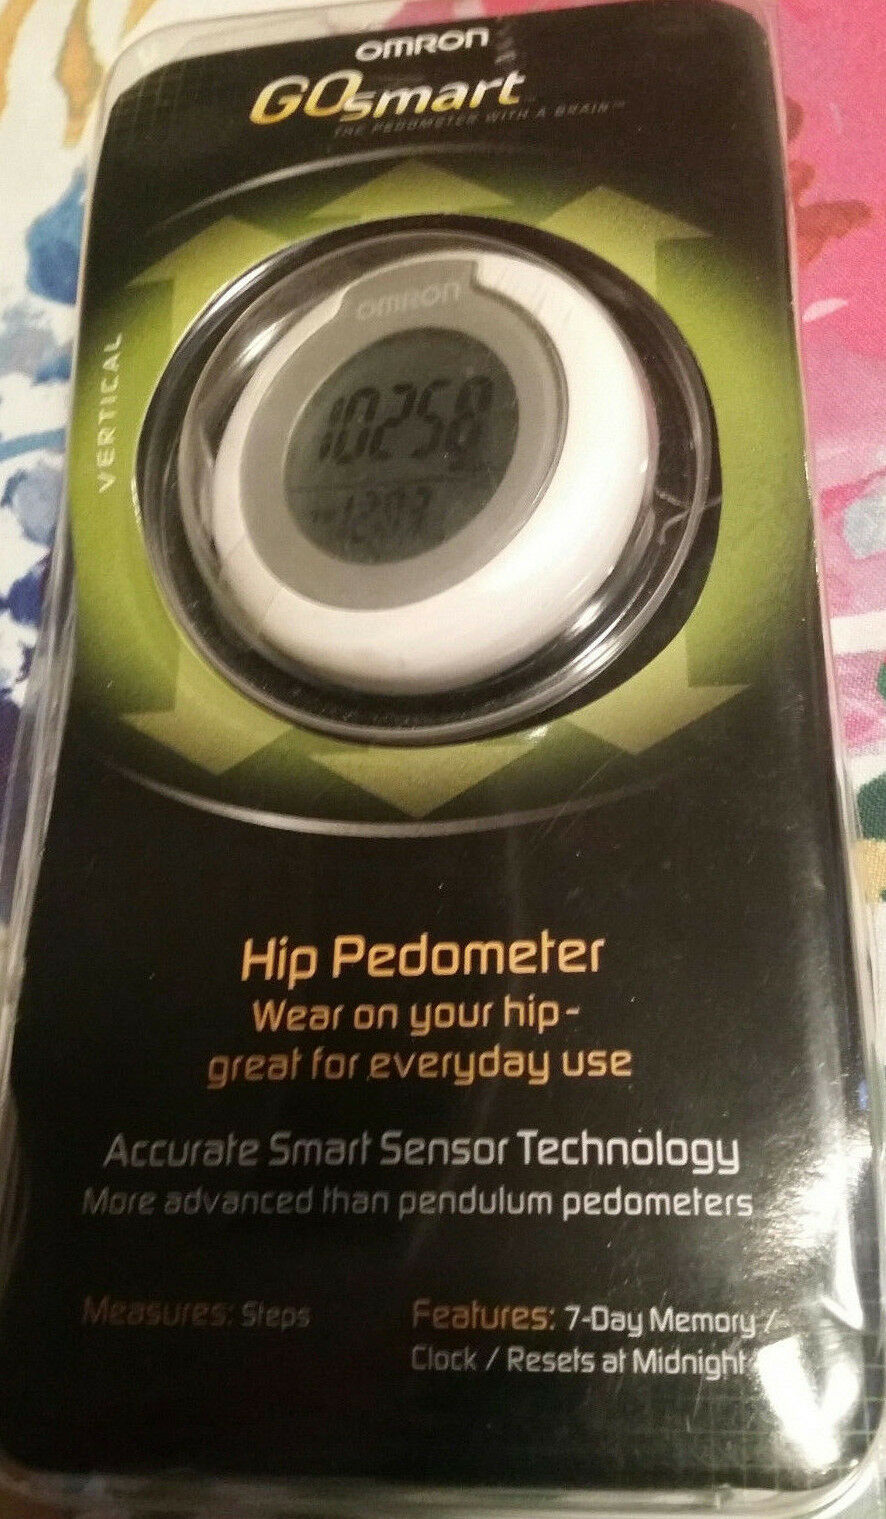 PEDOMETER OMRON HJ-150 GO SMART HIP PEDOMETER SMART SENSOR TECHN STORES 7 days